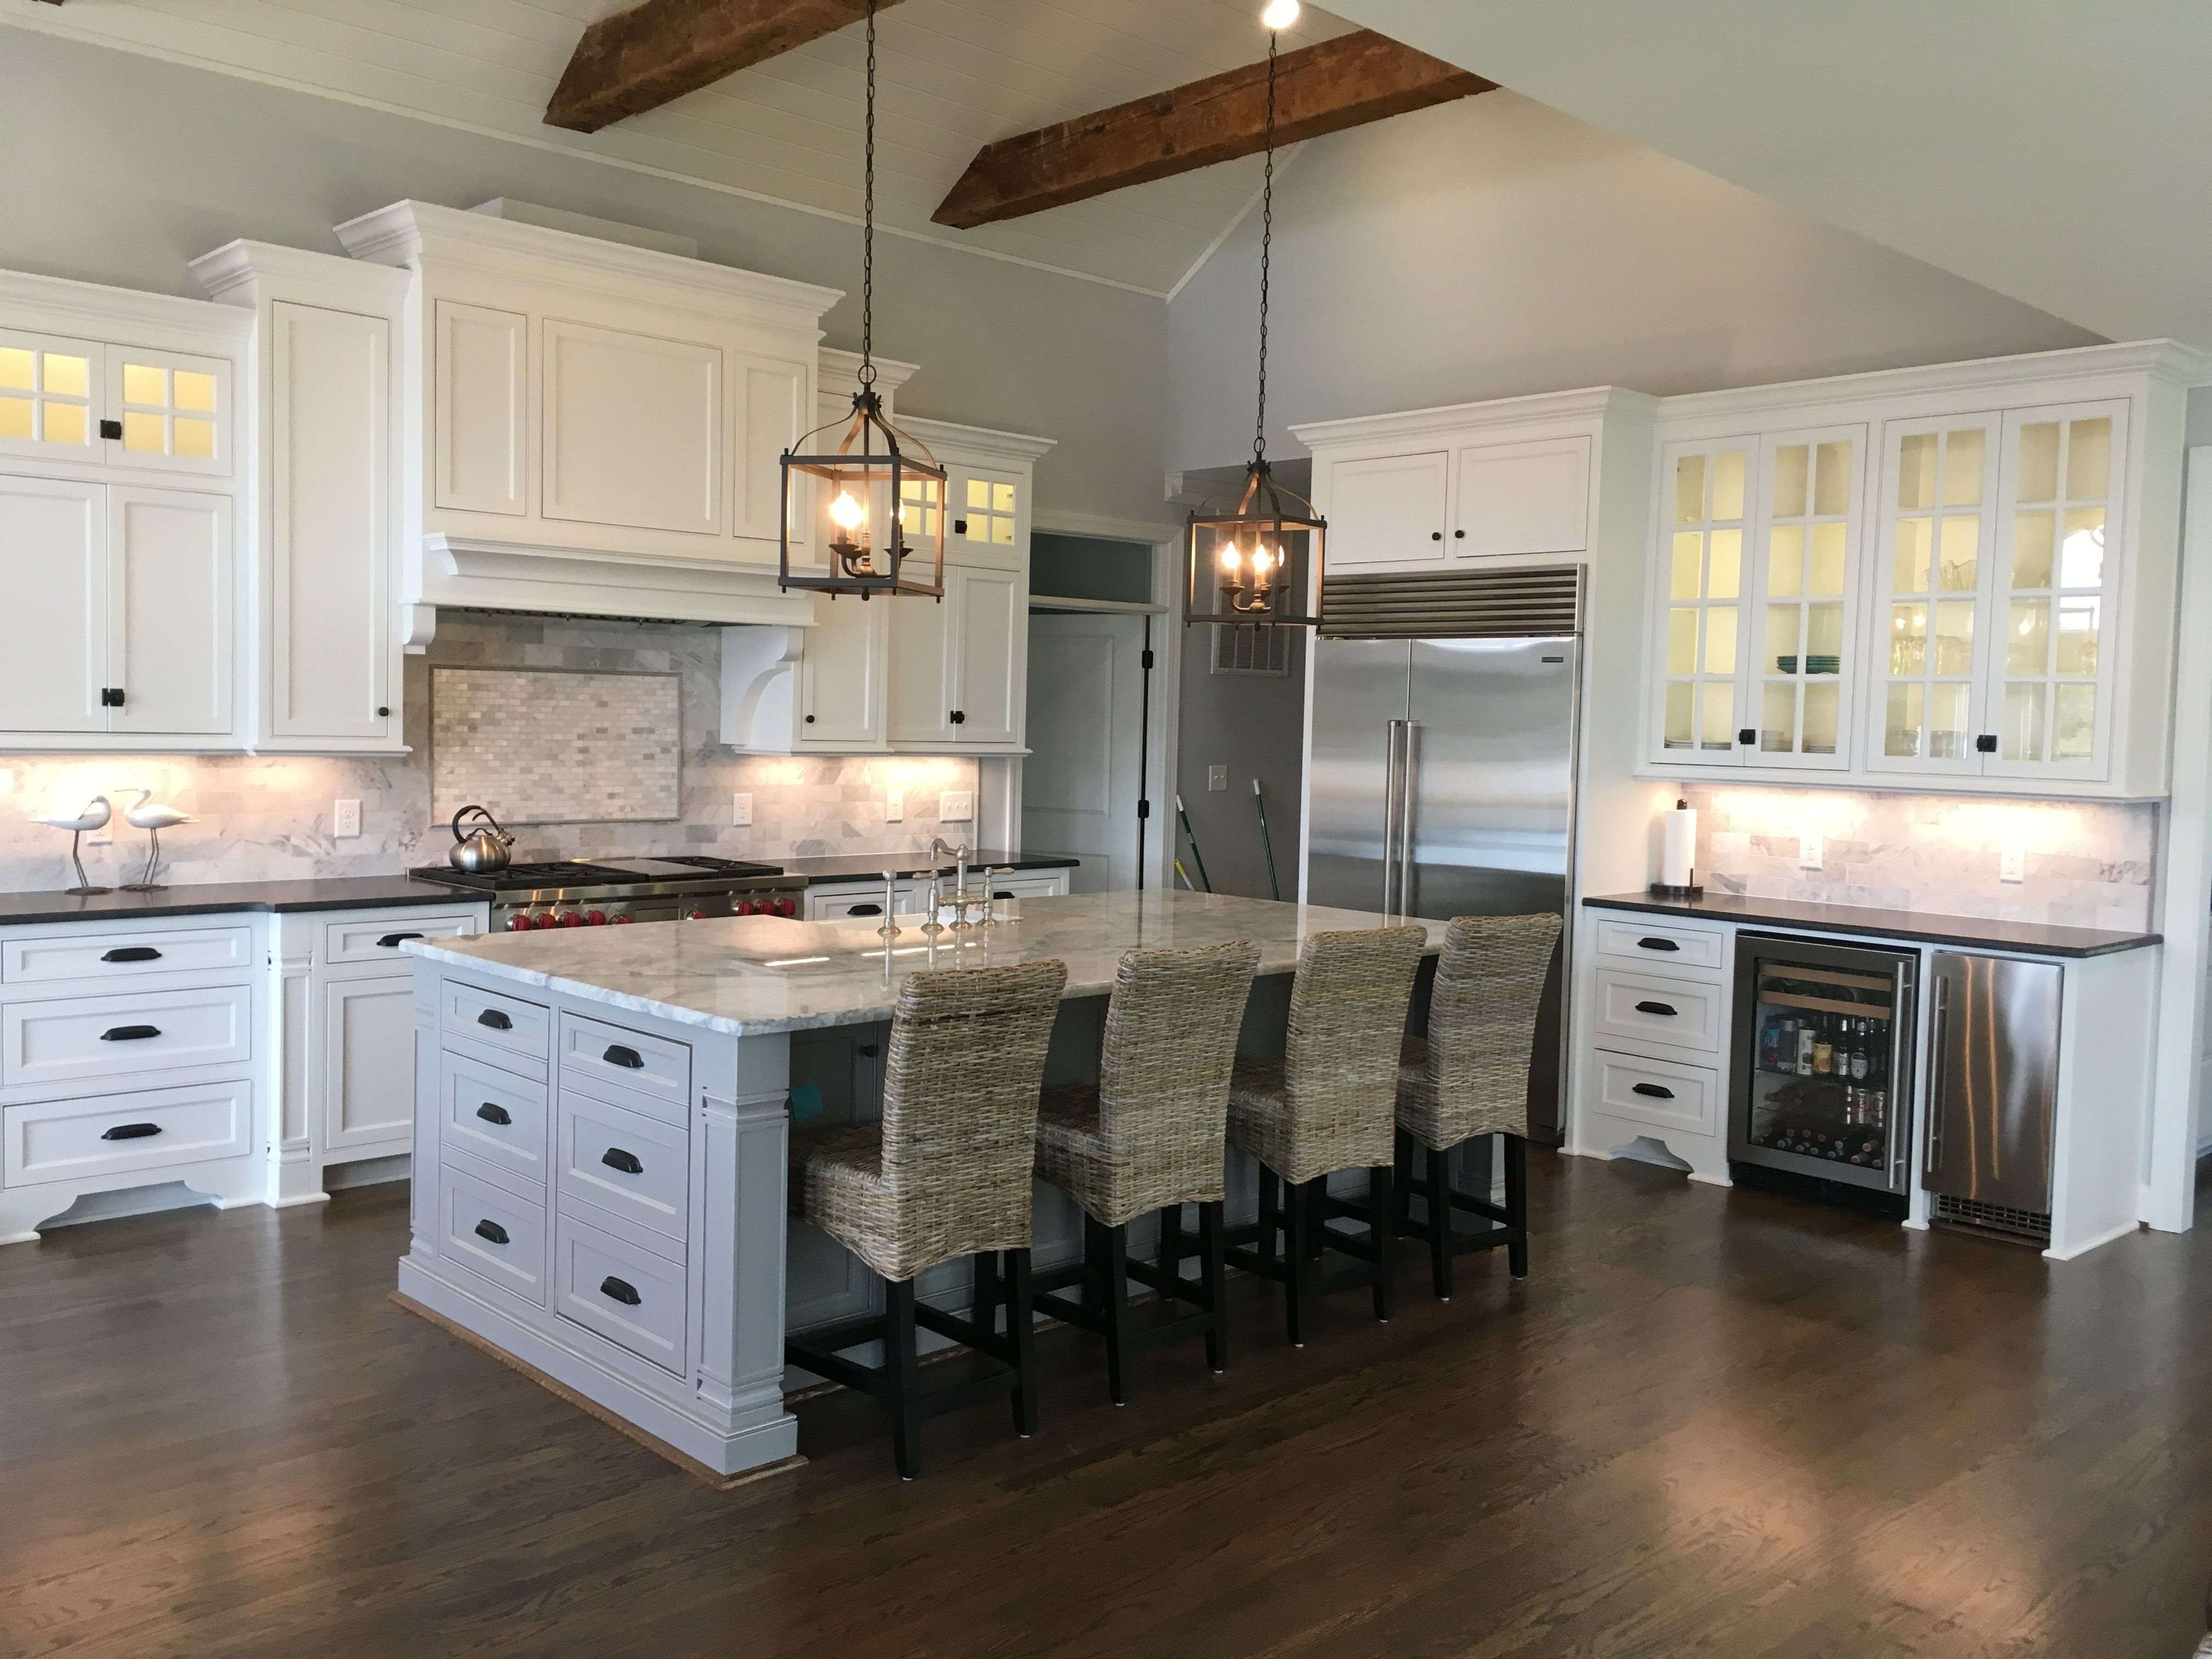 White Inset Cabinets With A Dark Wood Floor Decorative Wood Hood Large Gray Island W Staggered Kitchen Cabinets Vaulted Ceiling Kitchen White Modern Kitchen